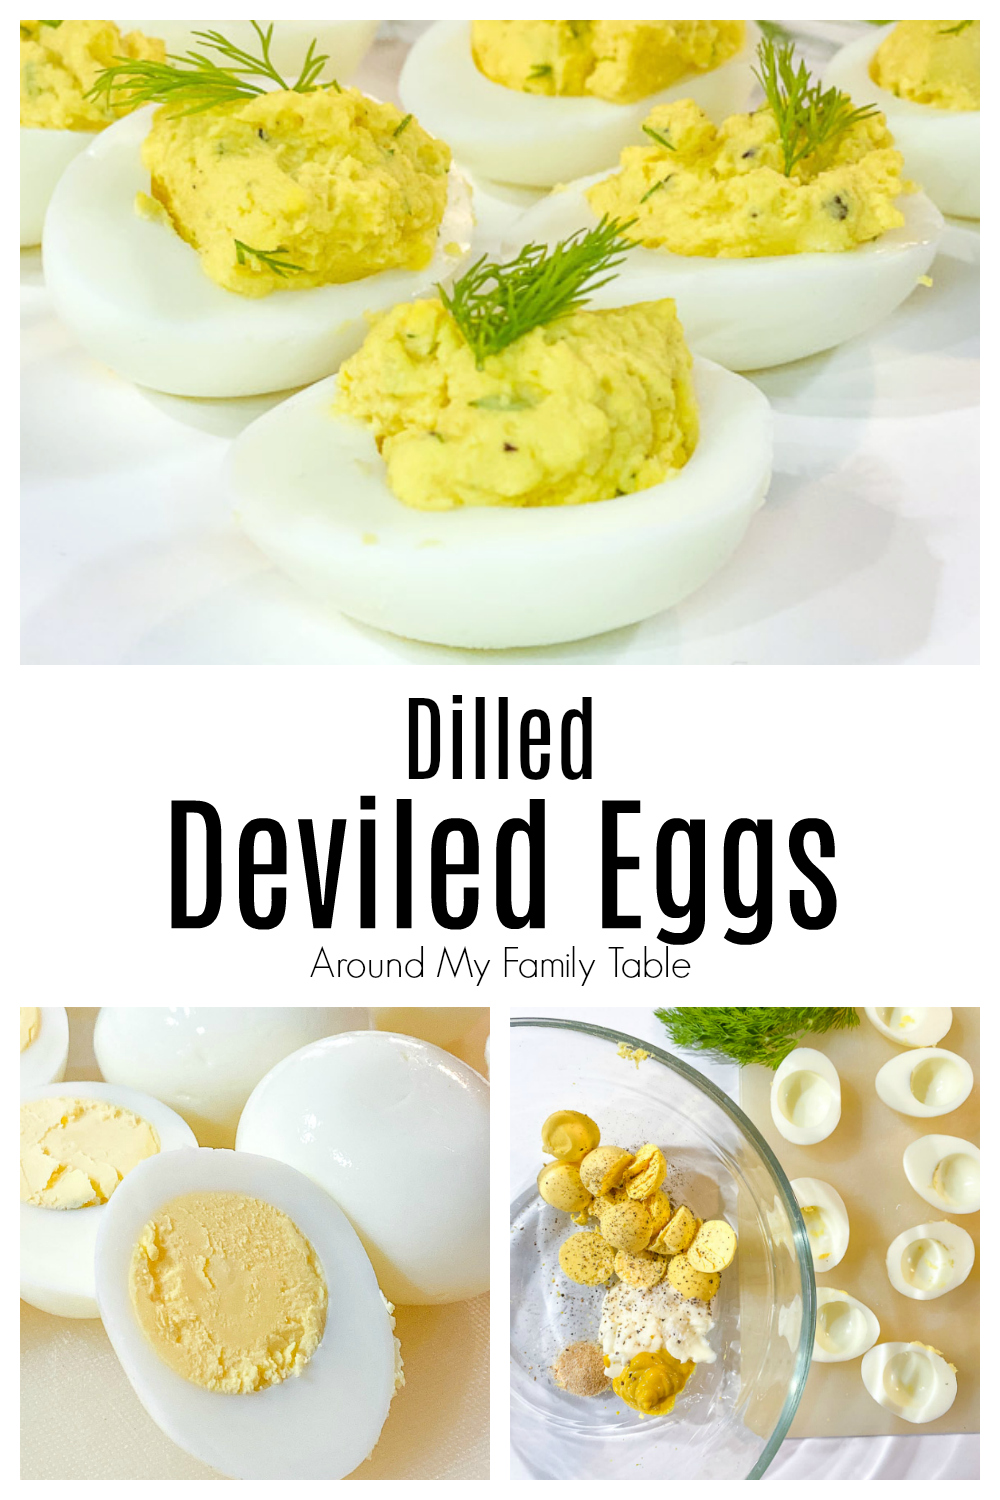 dilled deviled eggs collage with ingredients